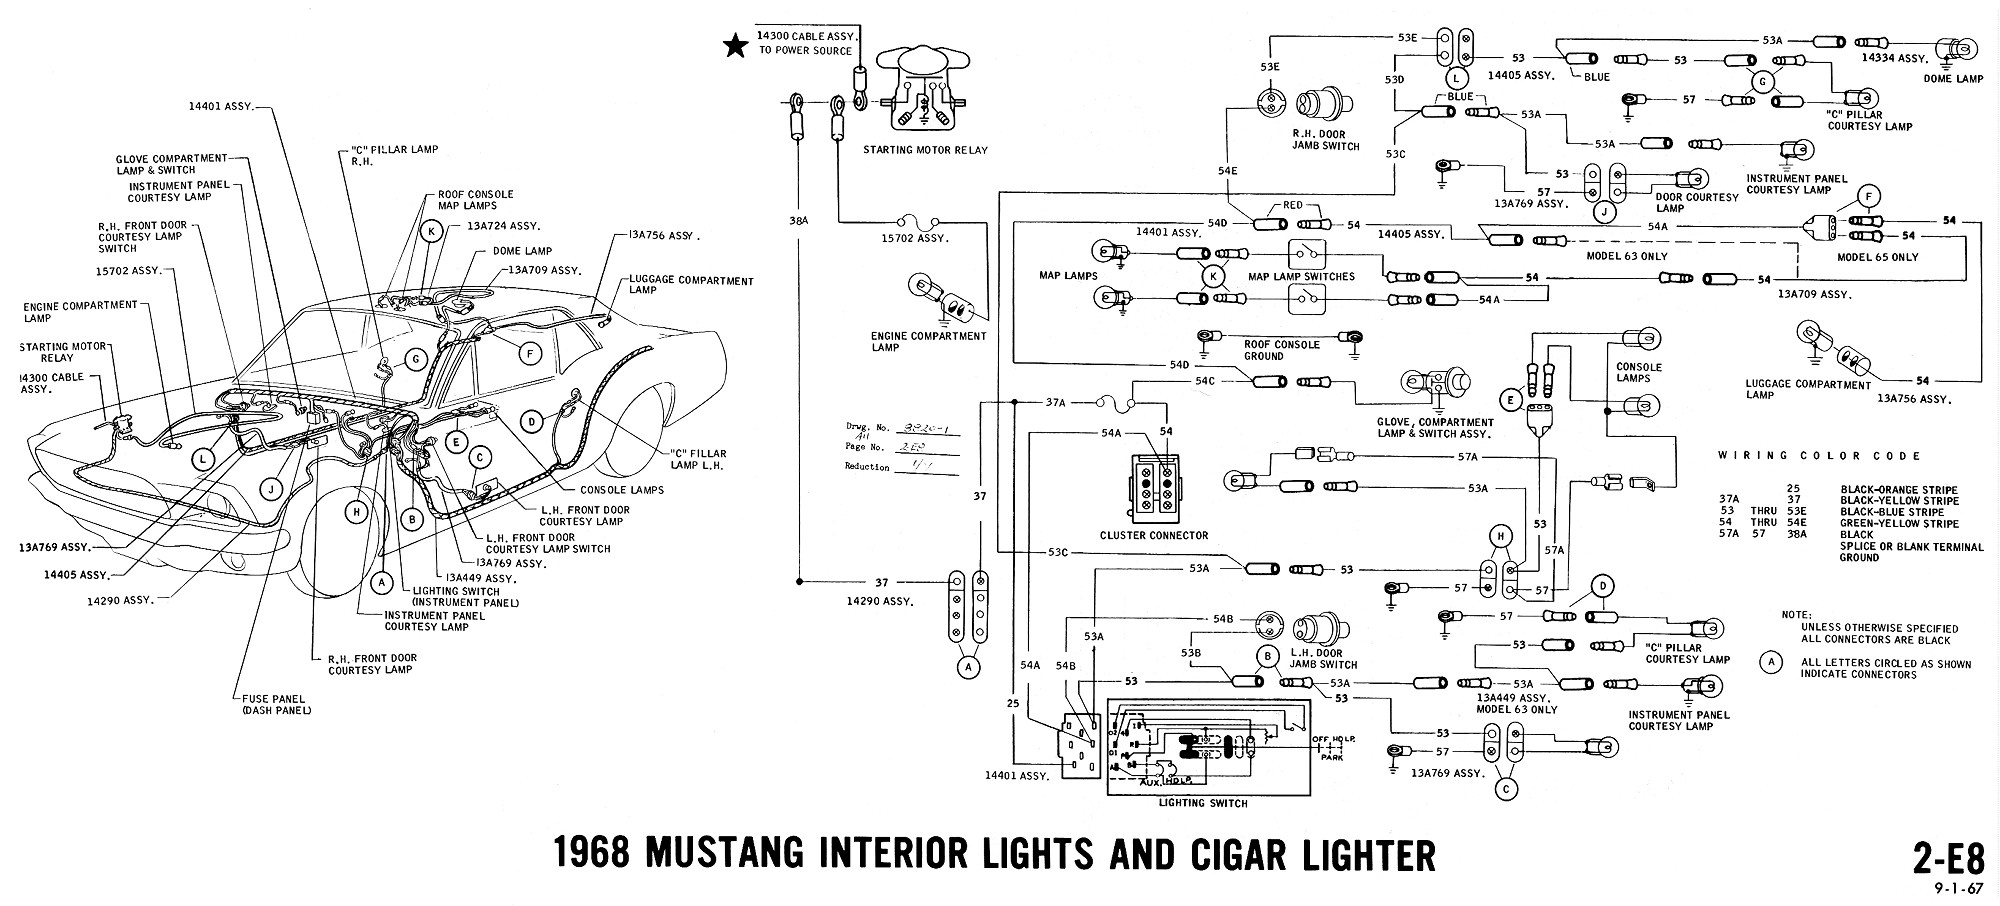 1968 mustang wiring diagram interior lights cigar lighter 1968 mustang wiring diagrams and vacuum schematics average joe 1968 ford mustang wiring diagram at soozxer.org